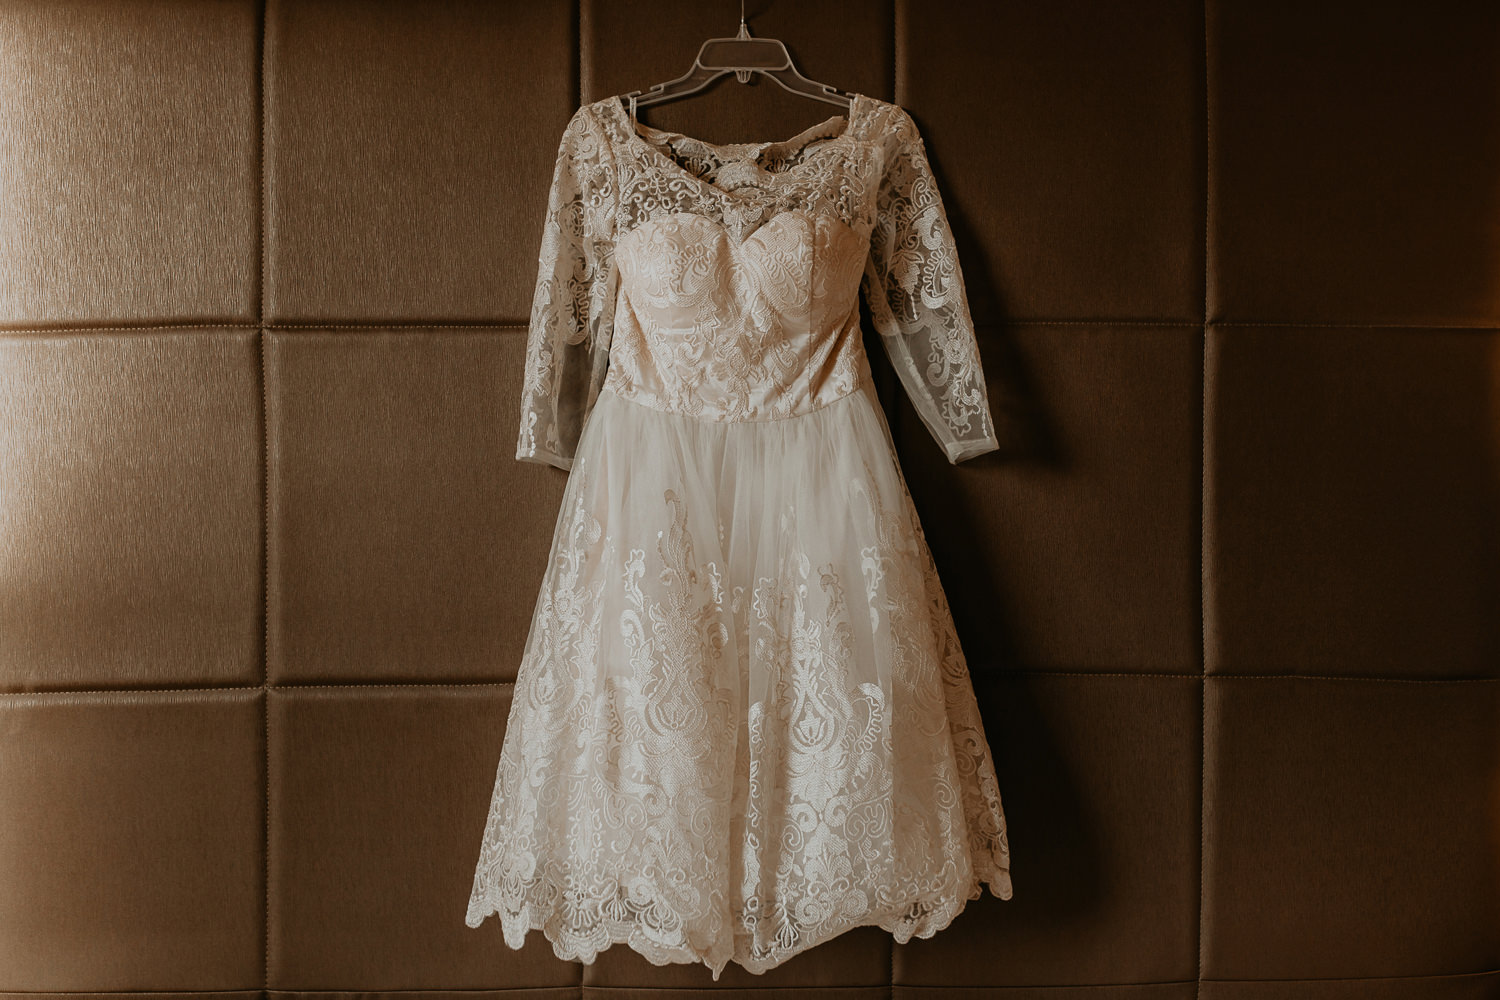 brides dress hanging on bed frame